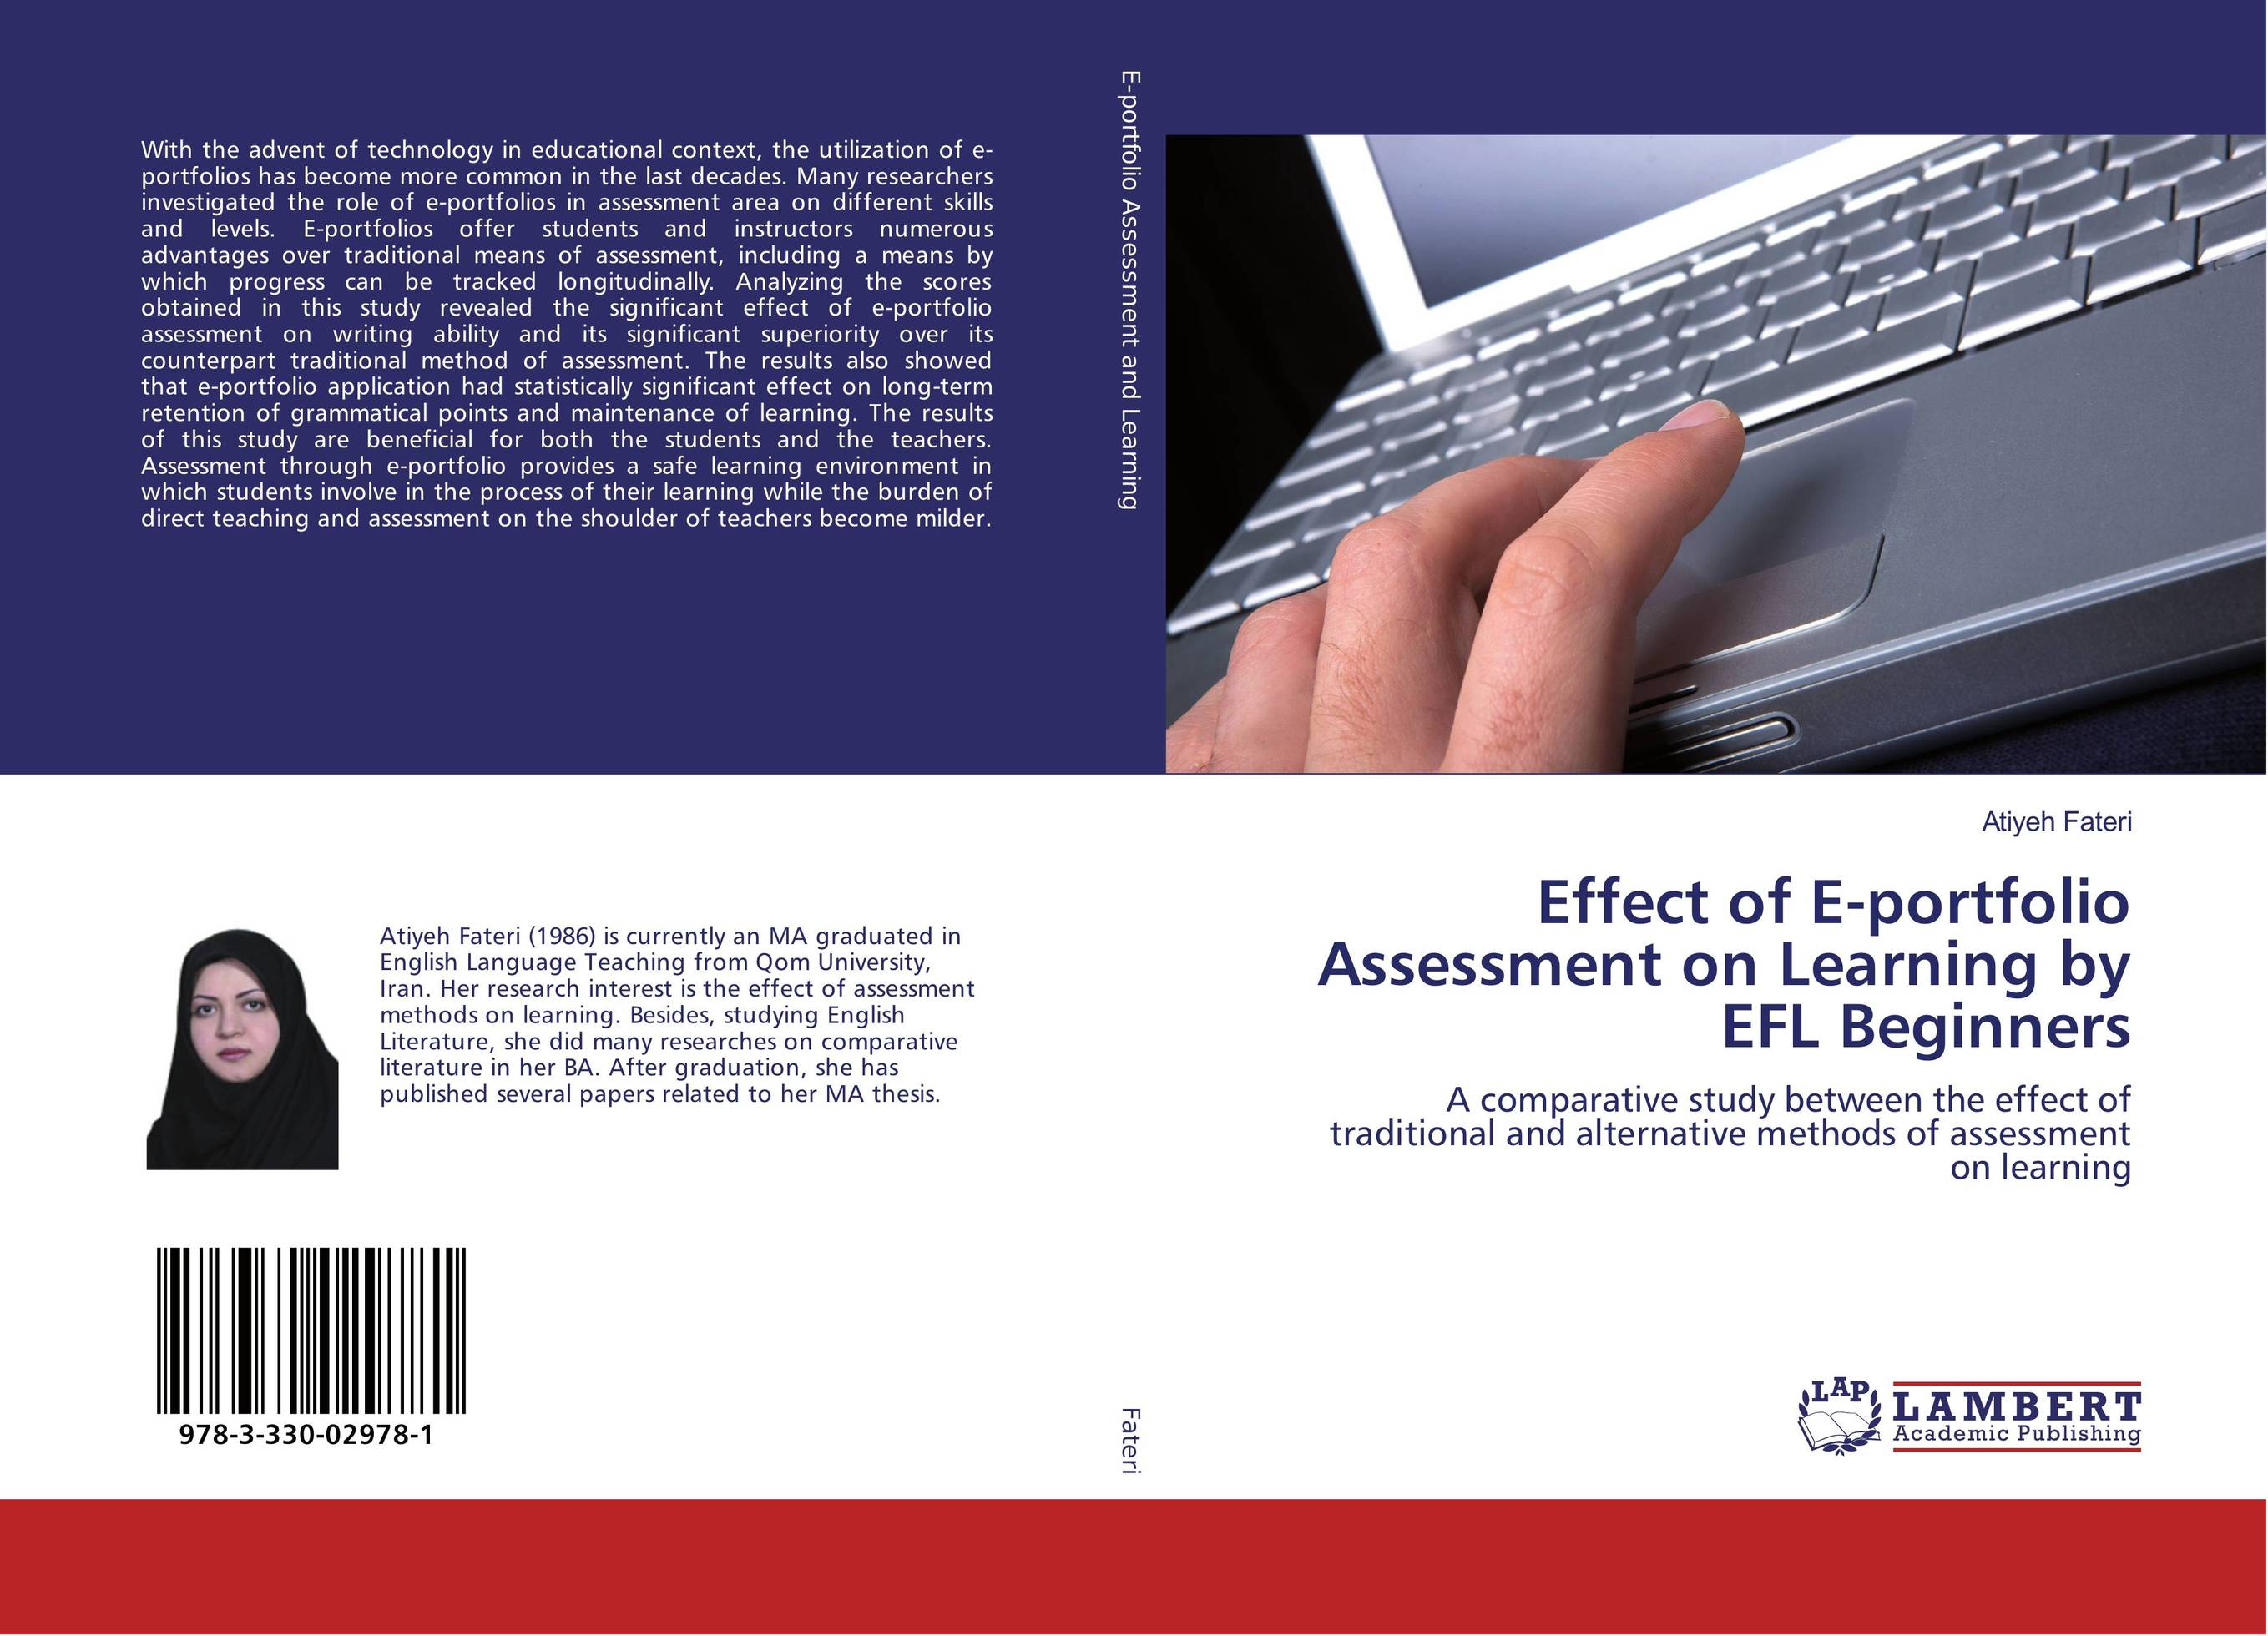 9783330029781 Effect of Eportfolio Assessment on Learning by EFL Beginners At